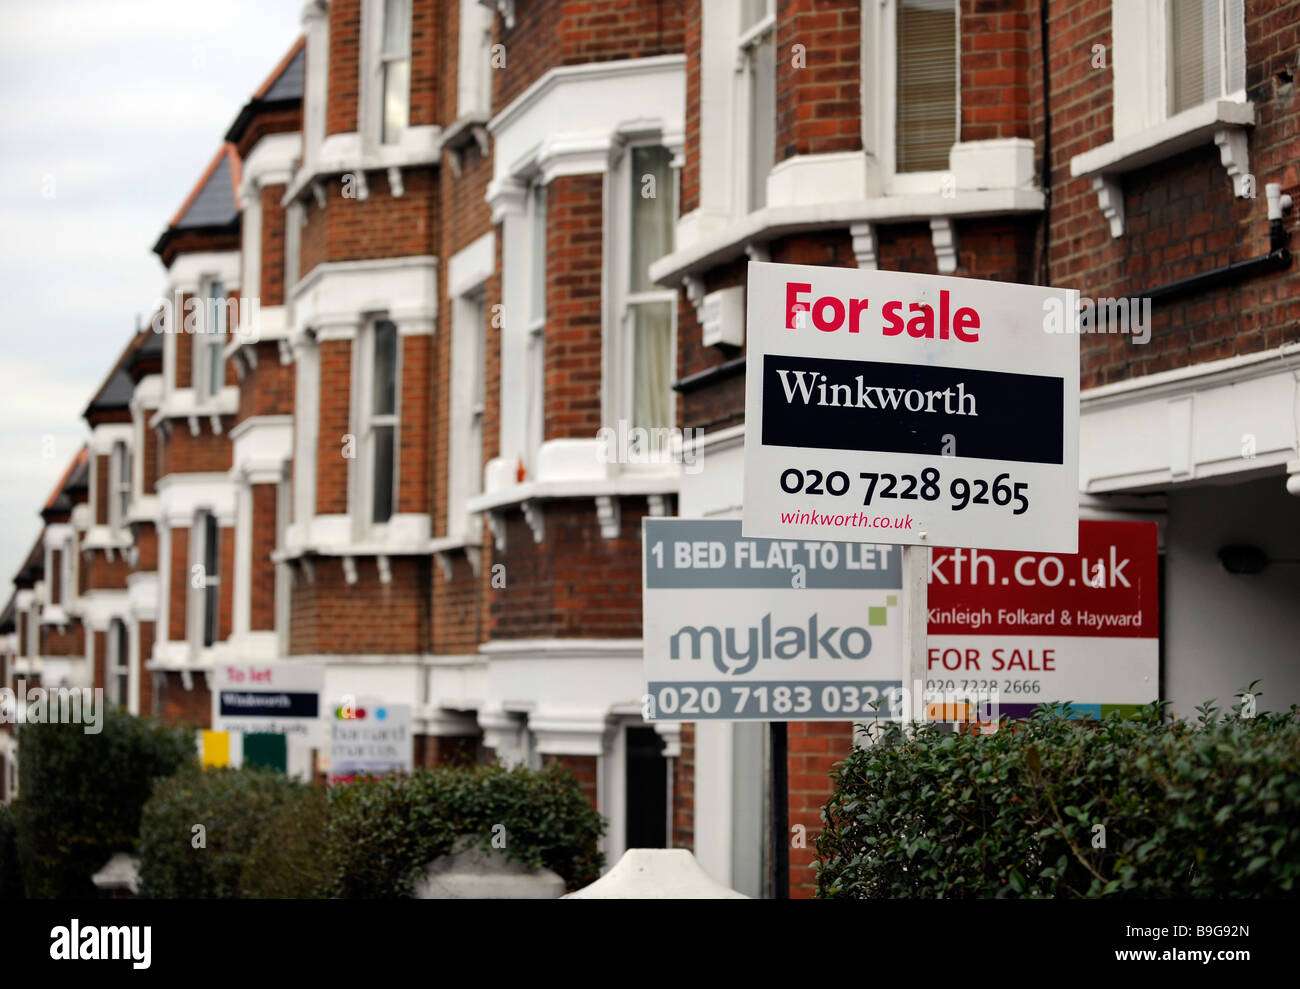 Stupendous Real Estate For Sale To Let Signs Outside Terraced Flats Download Free Architecture Designs Rallybritishbridgeorg